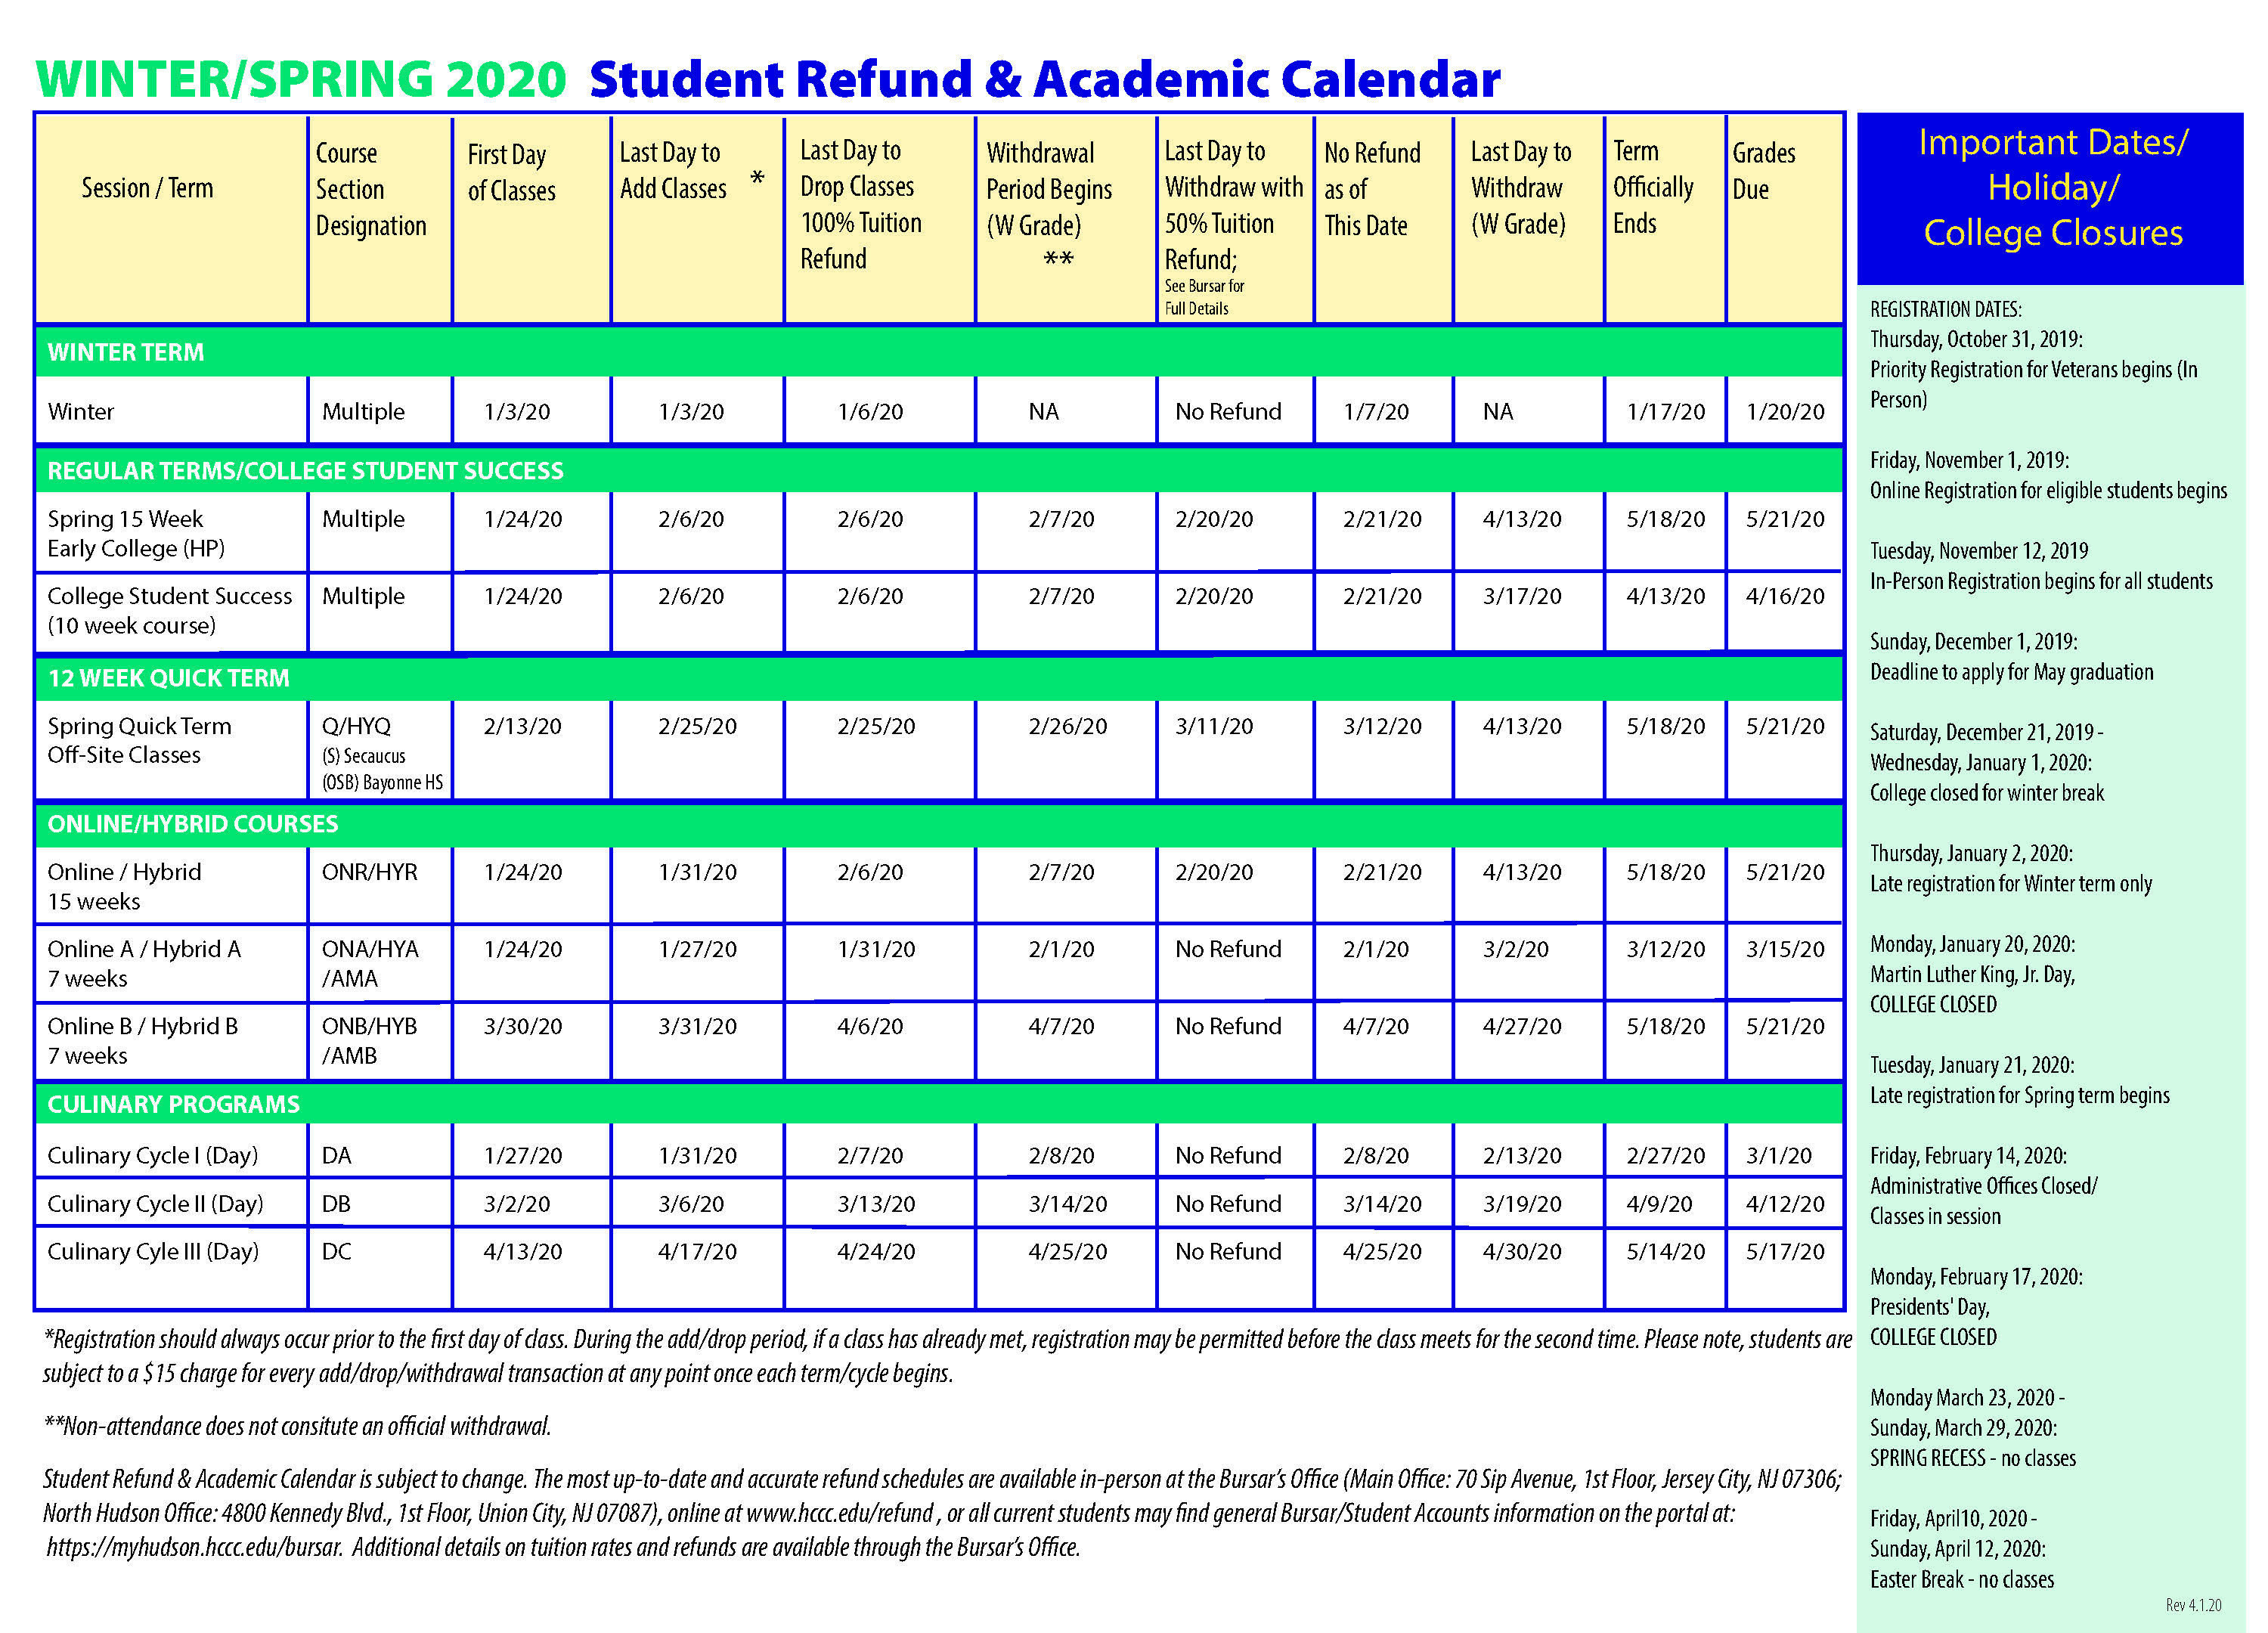 Hudson County Community College With Nassau Community College Spring 2020 Calendar